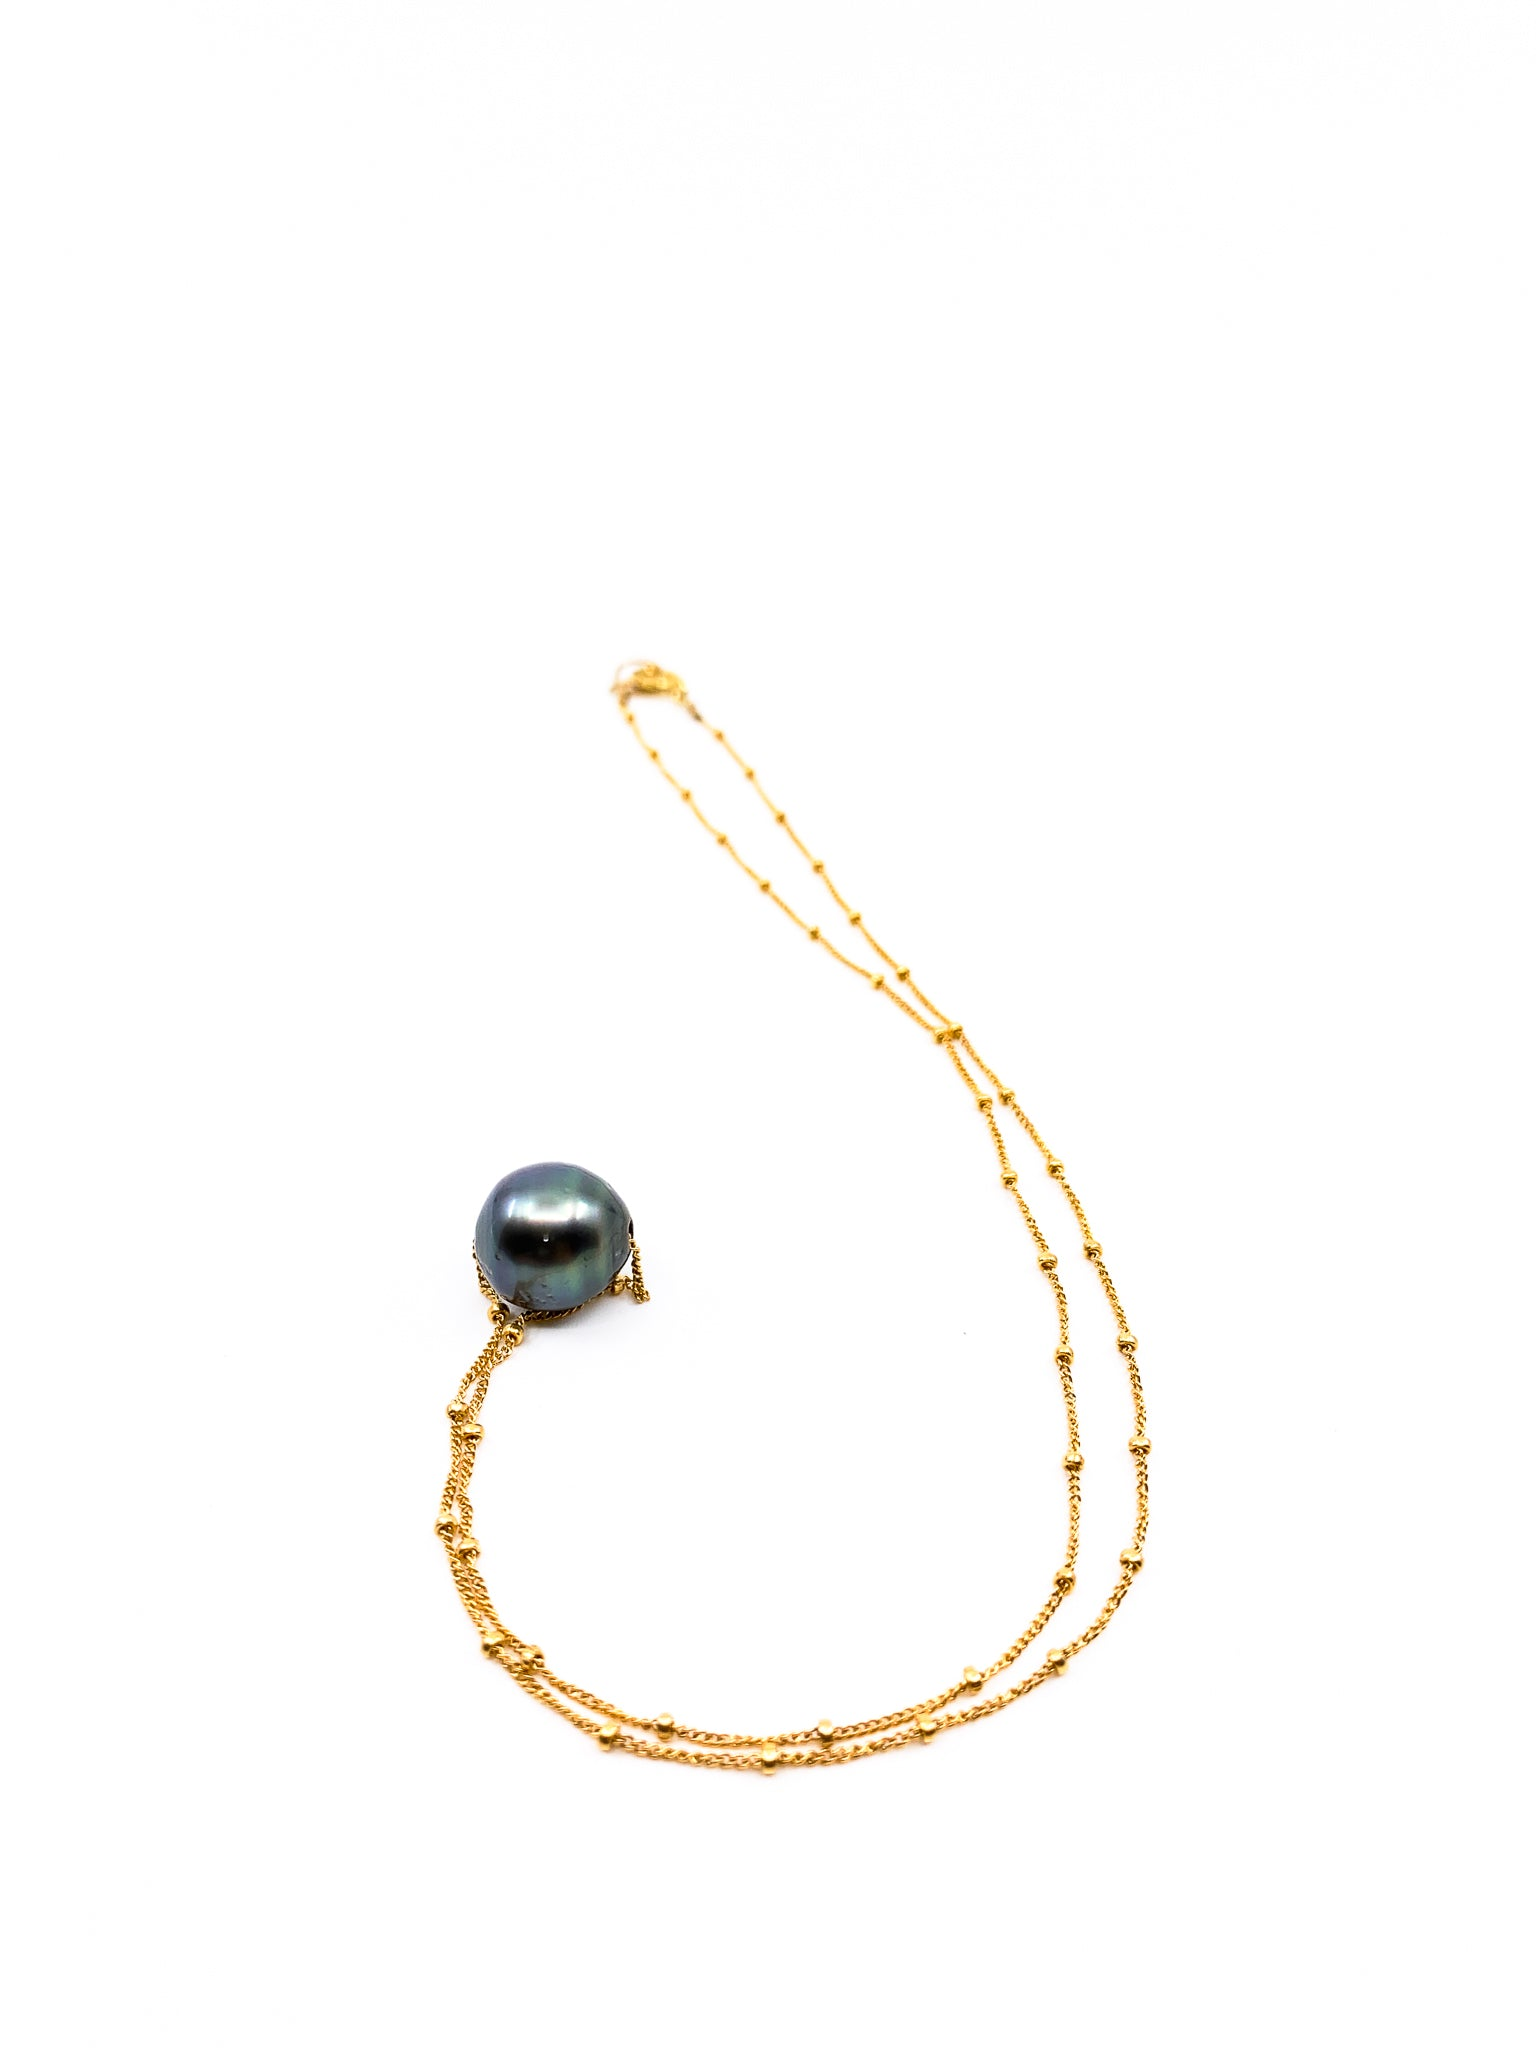 Tahitian Pearl necklace delicate gold chain necklace by black jewelry made in Hawaii